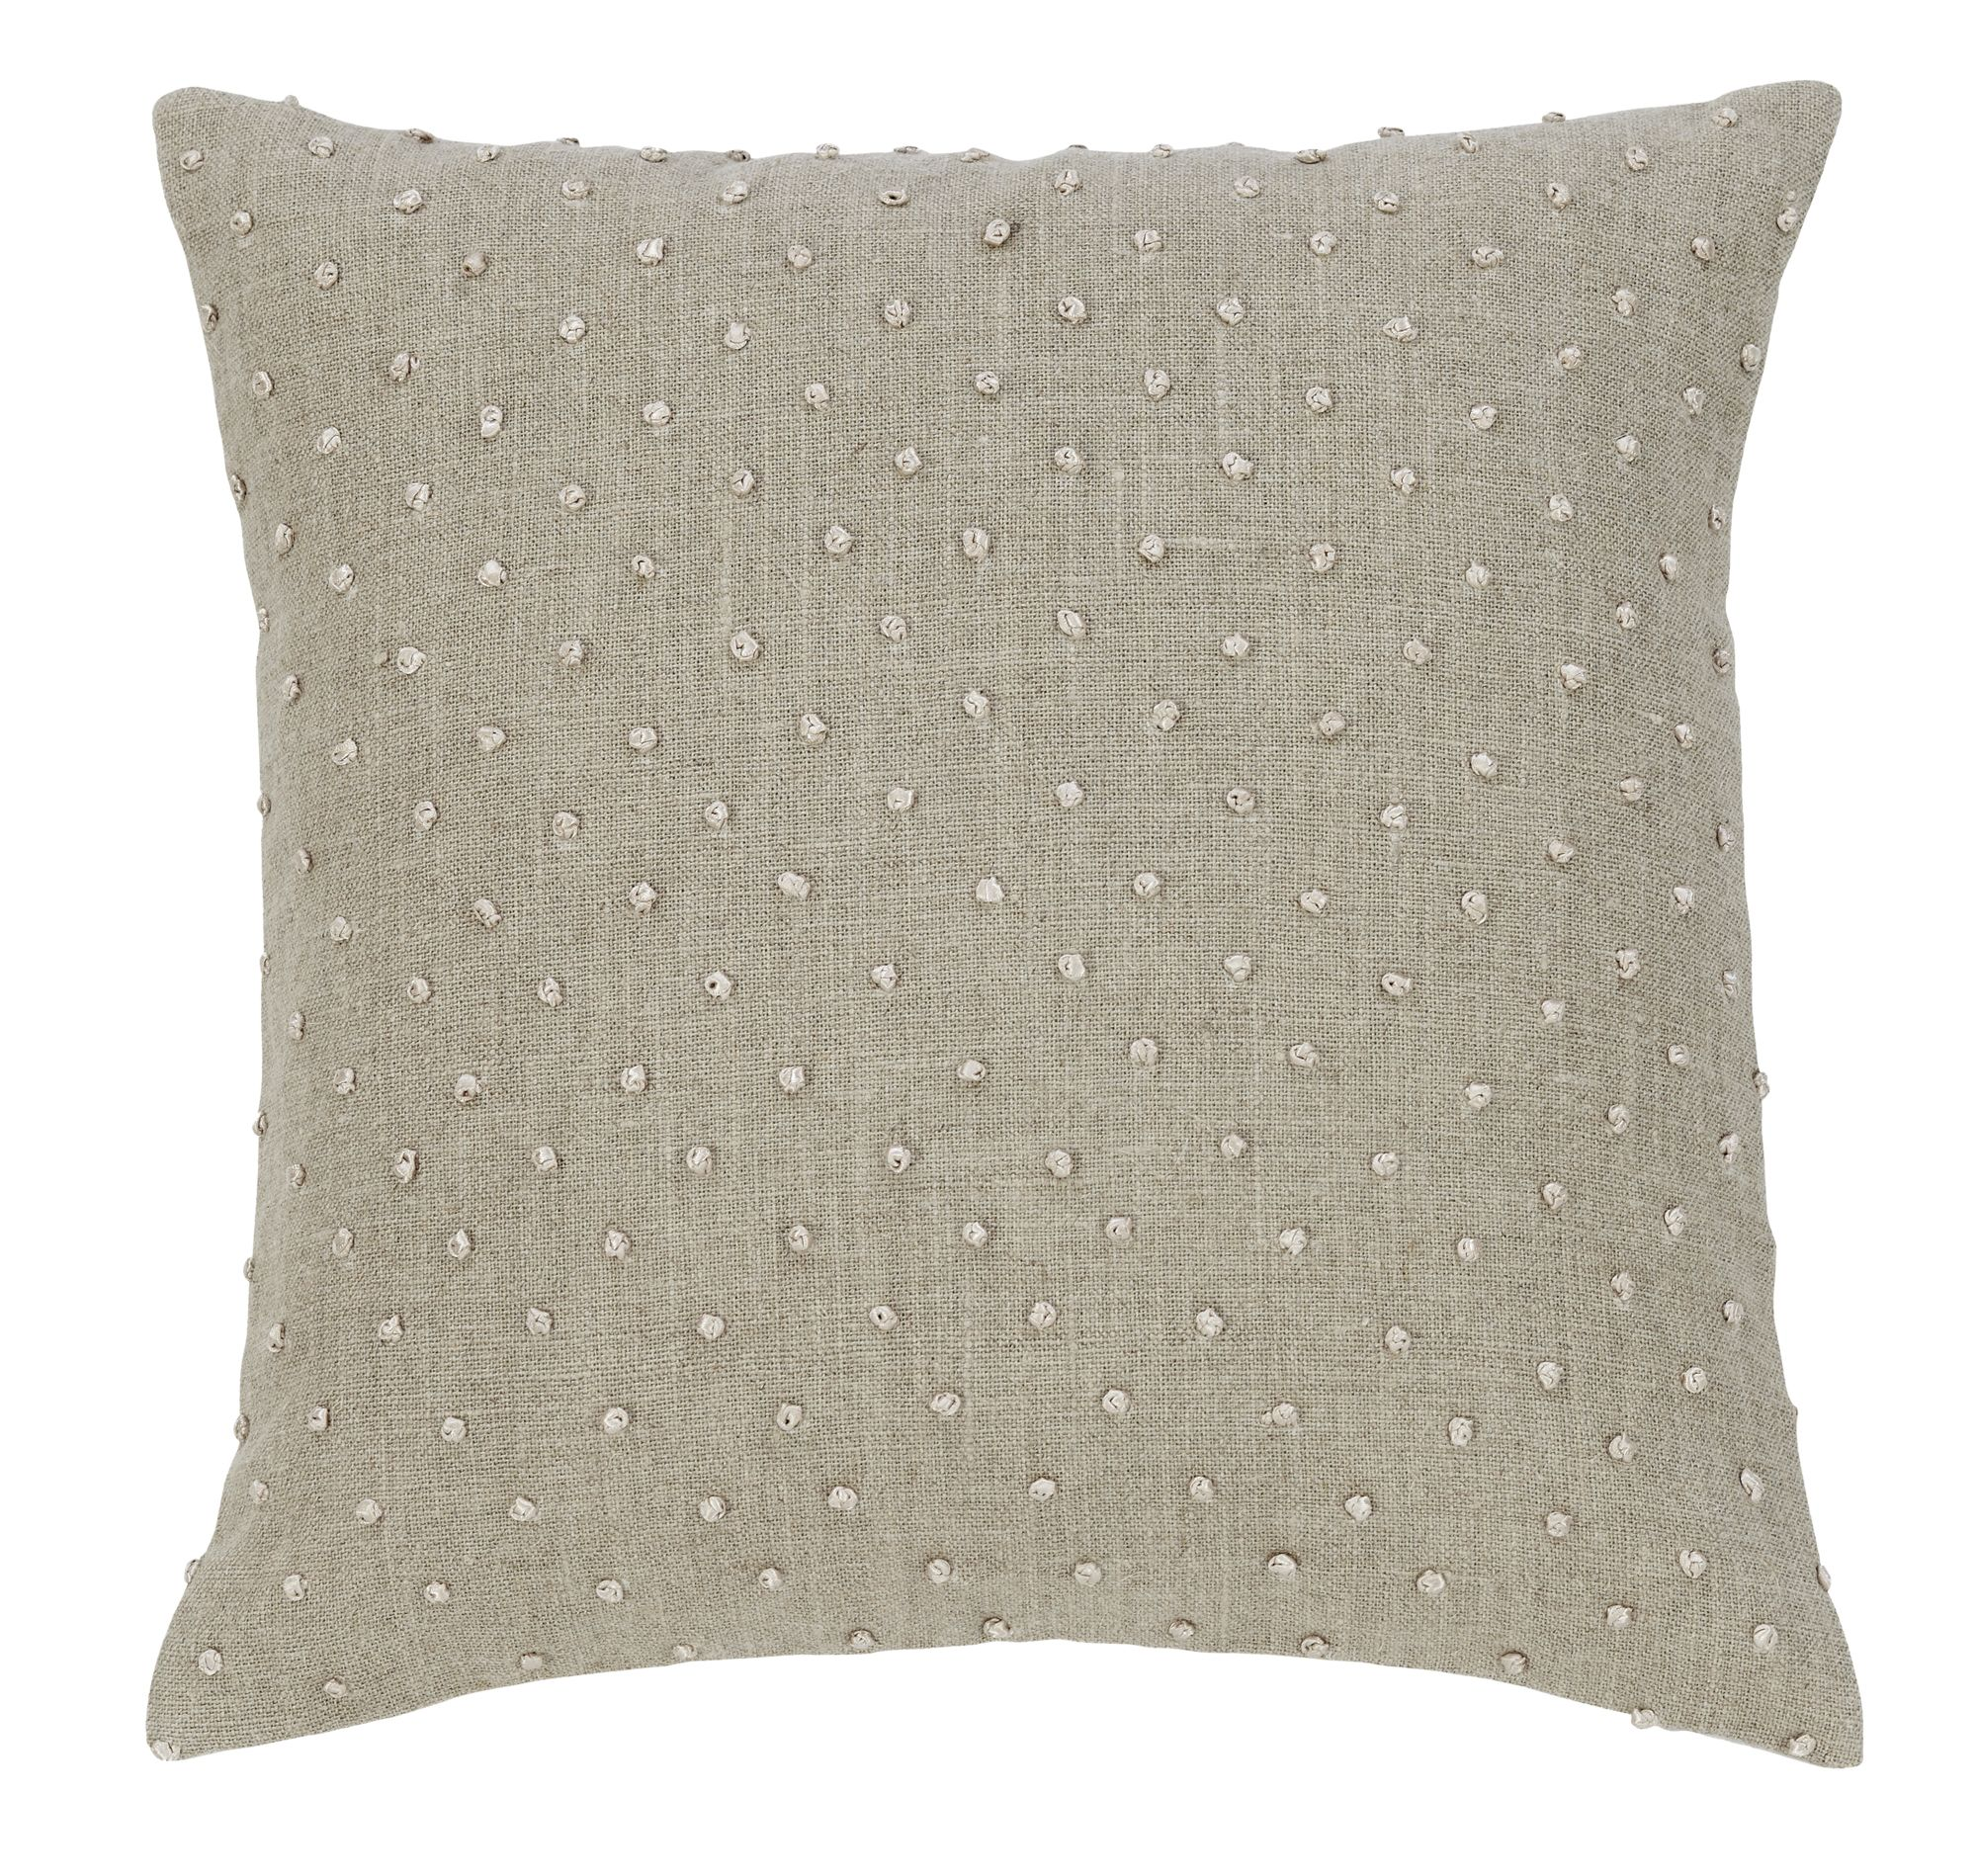 Linen with embroidered knot detail. Classic styling. www.heartmyhome.com.au